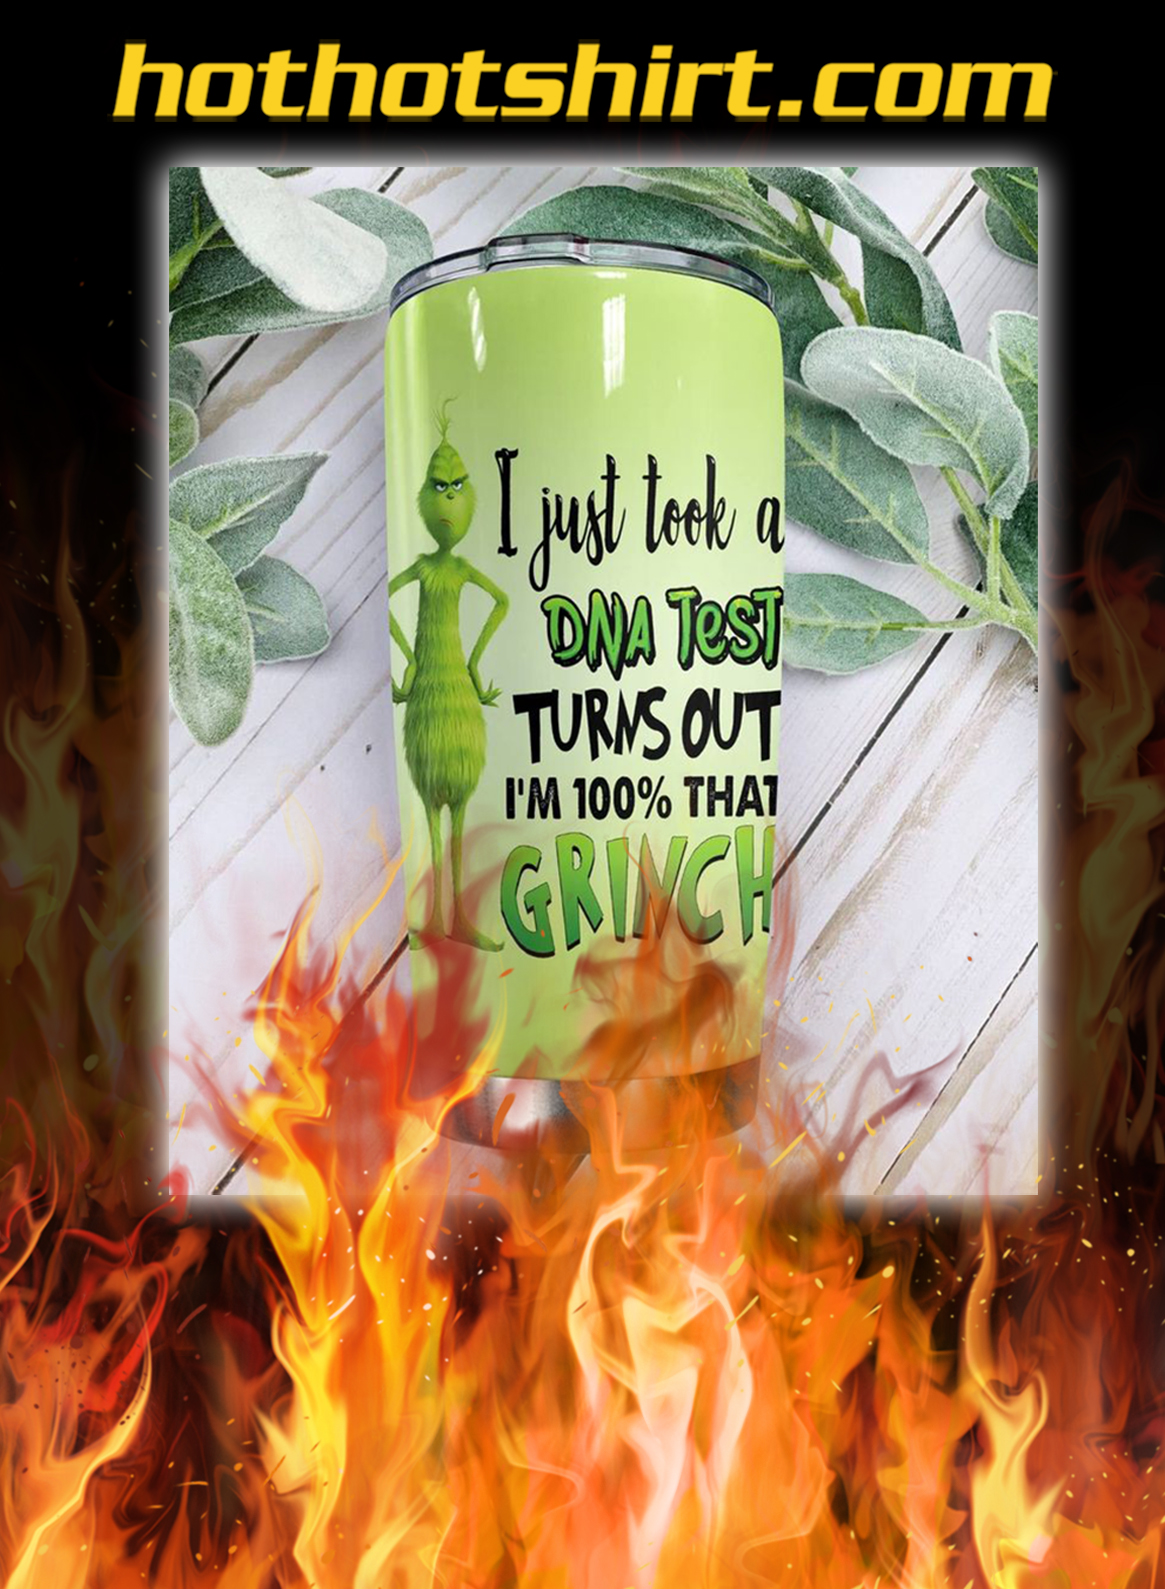 I just took a dna test turns out i'm 100% that grinch tumbler- pic 1